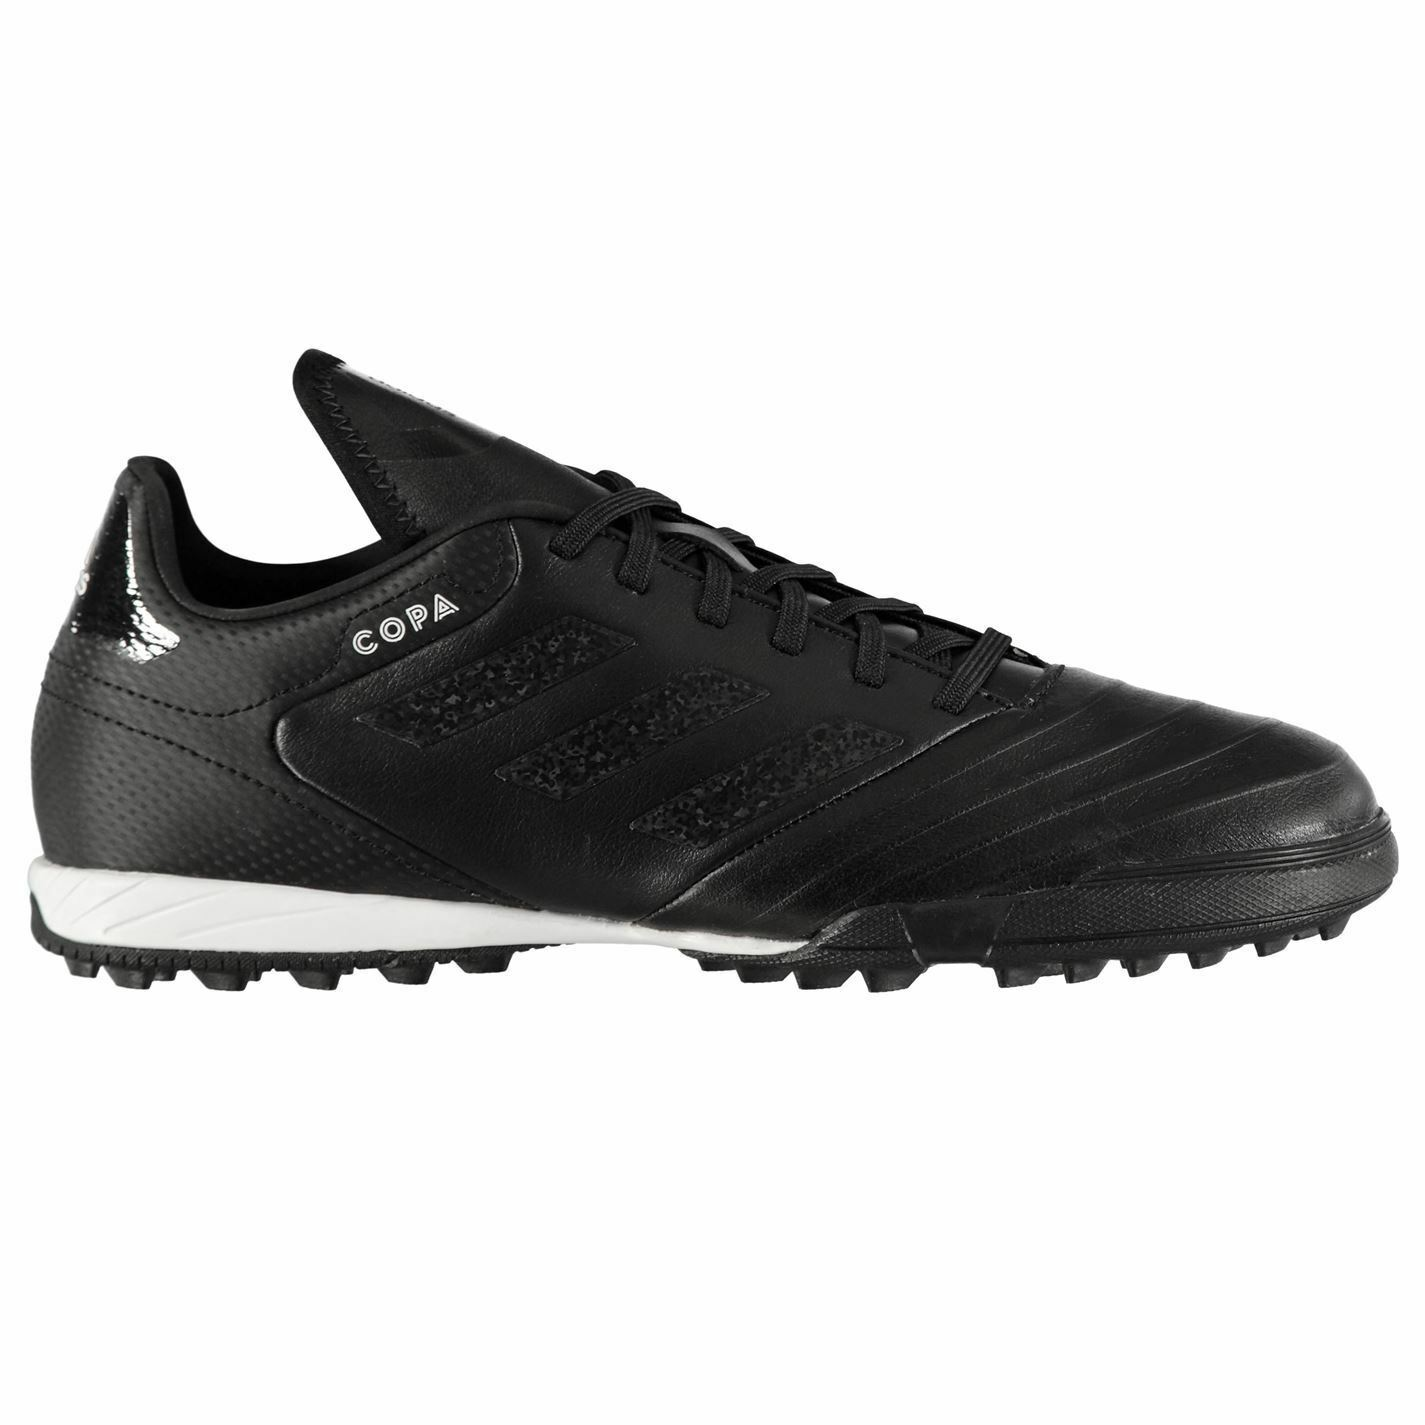 Adidas Adidas Adidas Mens Copa Tango 18.3 Astro Turf Trainers Football Stiefel Lace Up Padded 5d9a9c